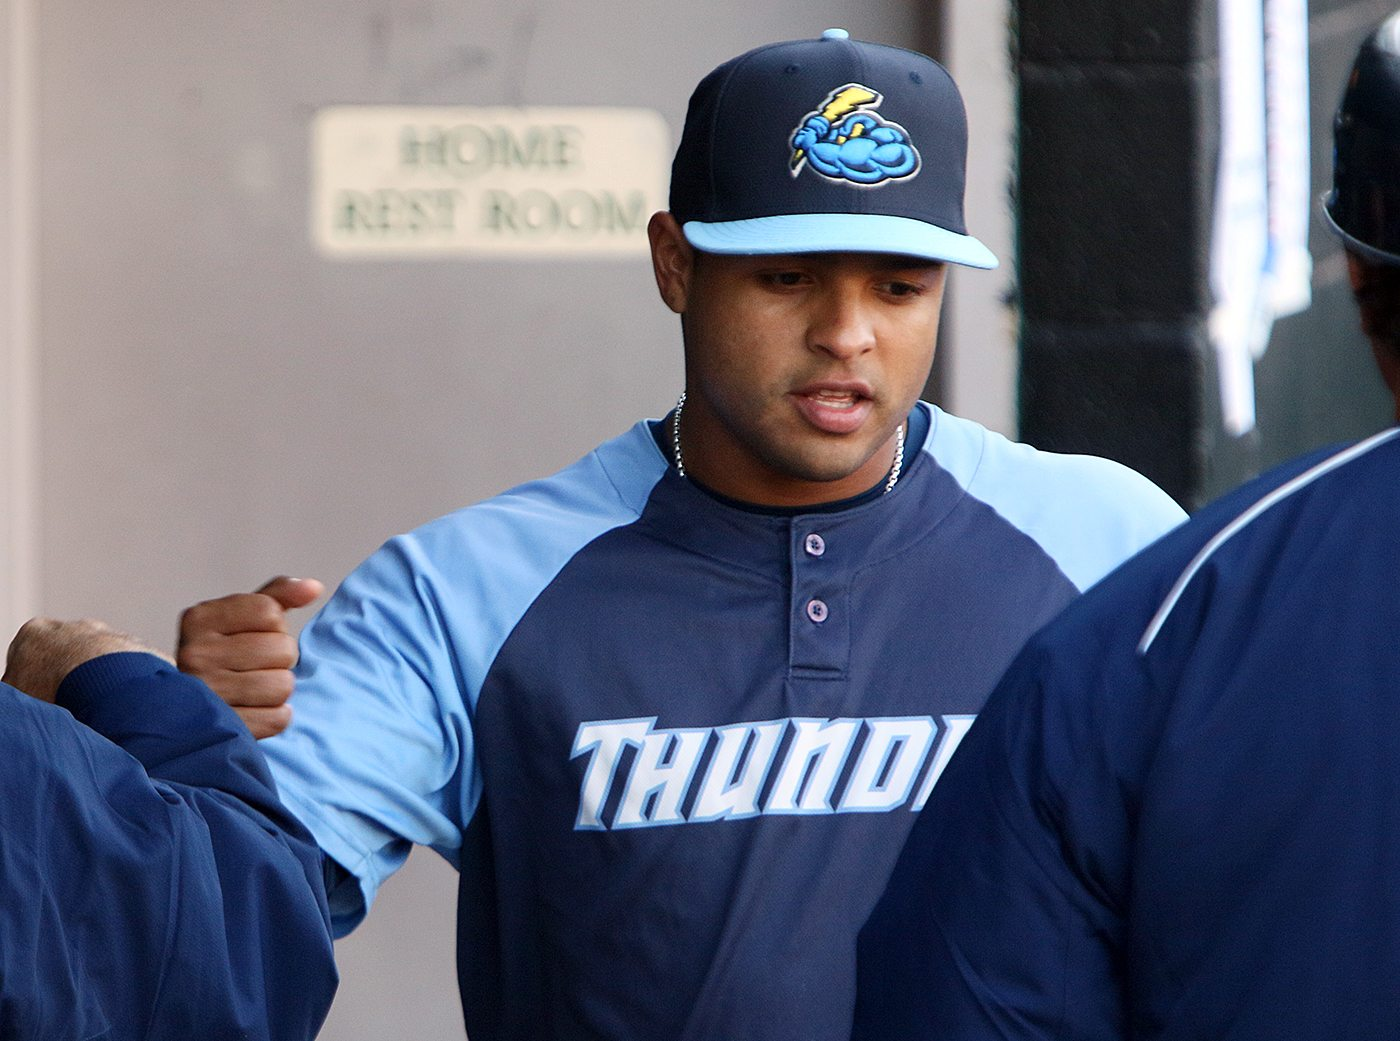 Trenton Thunder outfielder Juan Silva in the dugout before a game against the Portland Sea Dogs at Arm & Hammer Park in Trenton on Tuesday, April 12, 2016. The 25 year old was selected by the Cincinnati Reds in the eighth round of the 2009 First-Year Player Draft out of Puerto Rico Baseball Academy and High School in Gurabo, Puerto Rico, elected free agency in November 2015 and signed to a New York Yankees minor league contract in December 2015. . Photo by Martin Griff